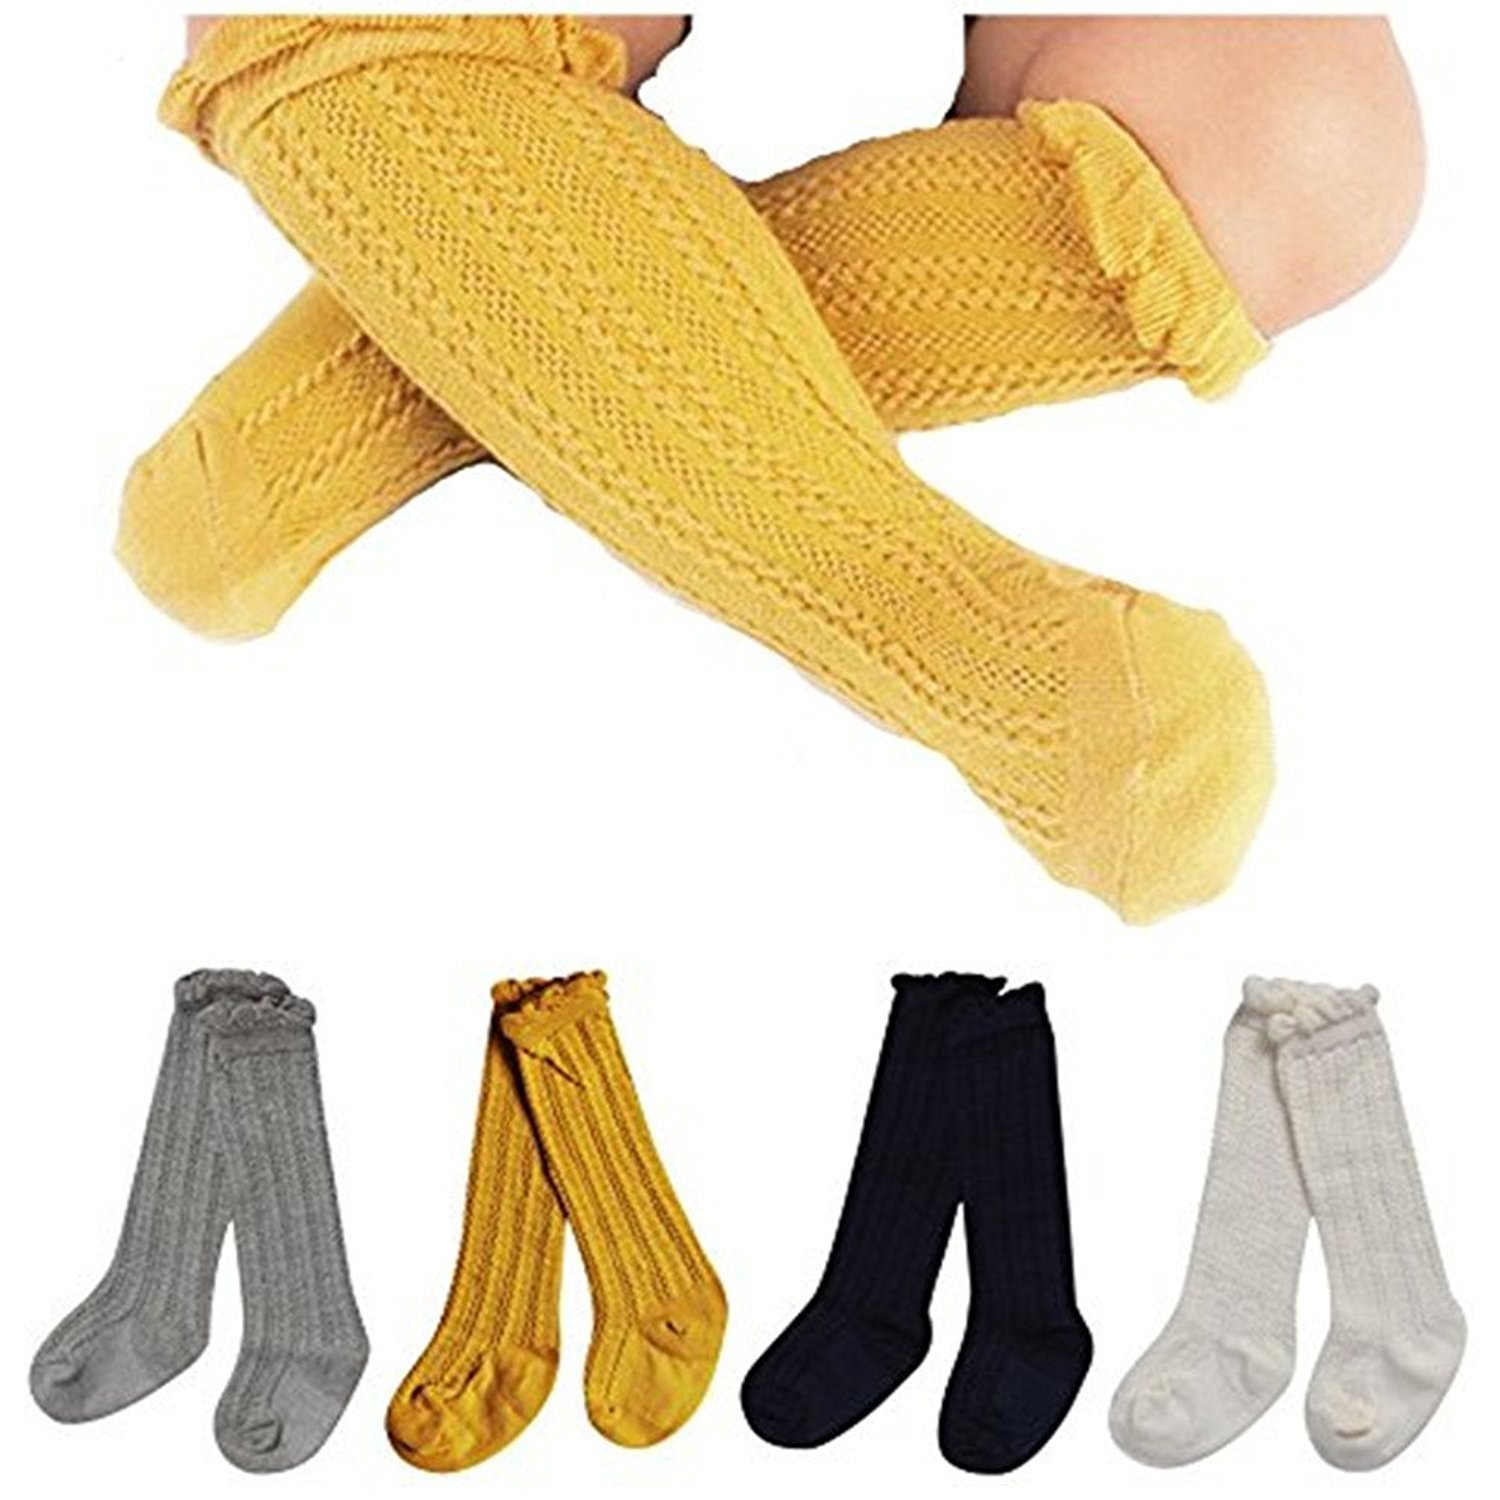 a2fb4e2319db Toptim 4 Pairs Baby Toddlers Cable Knit Knee High Socks for Boy and ...